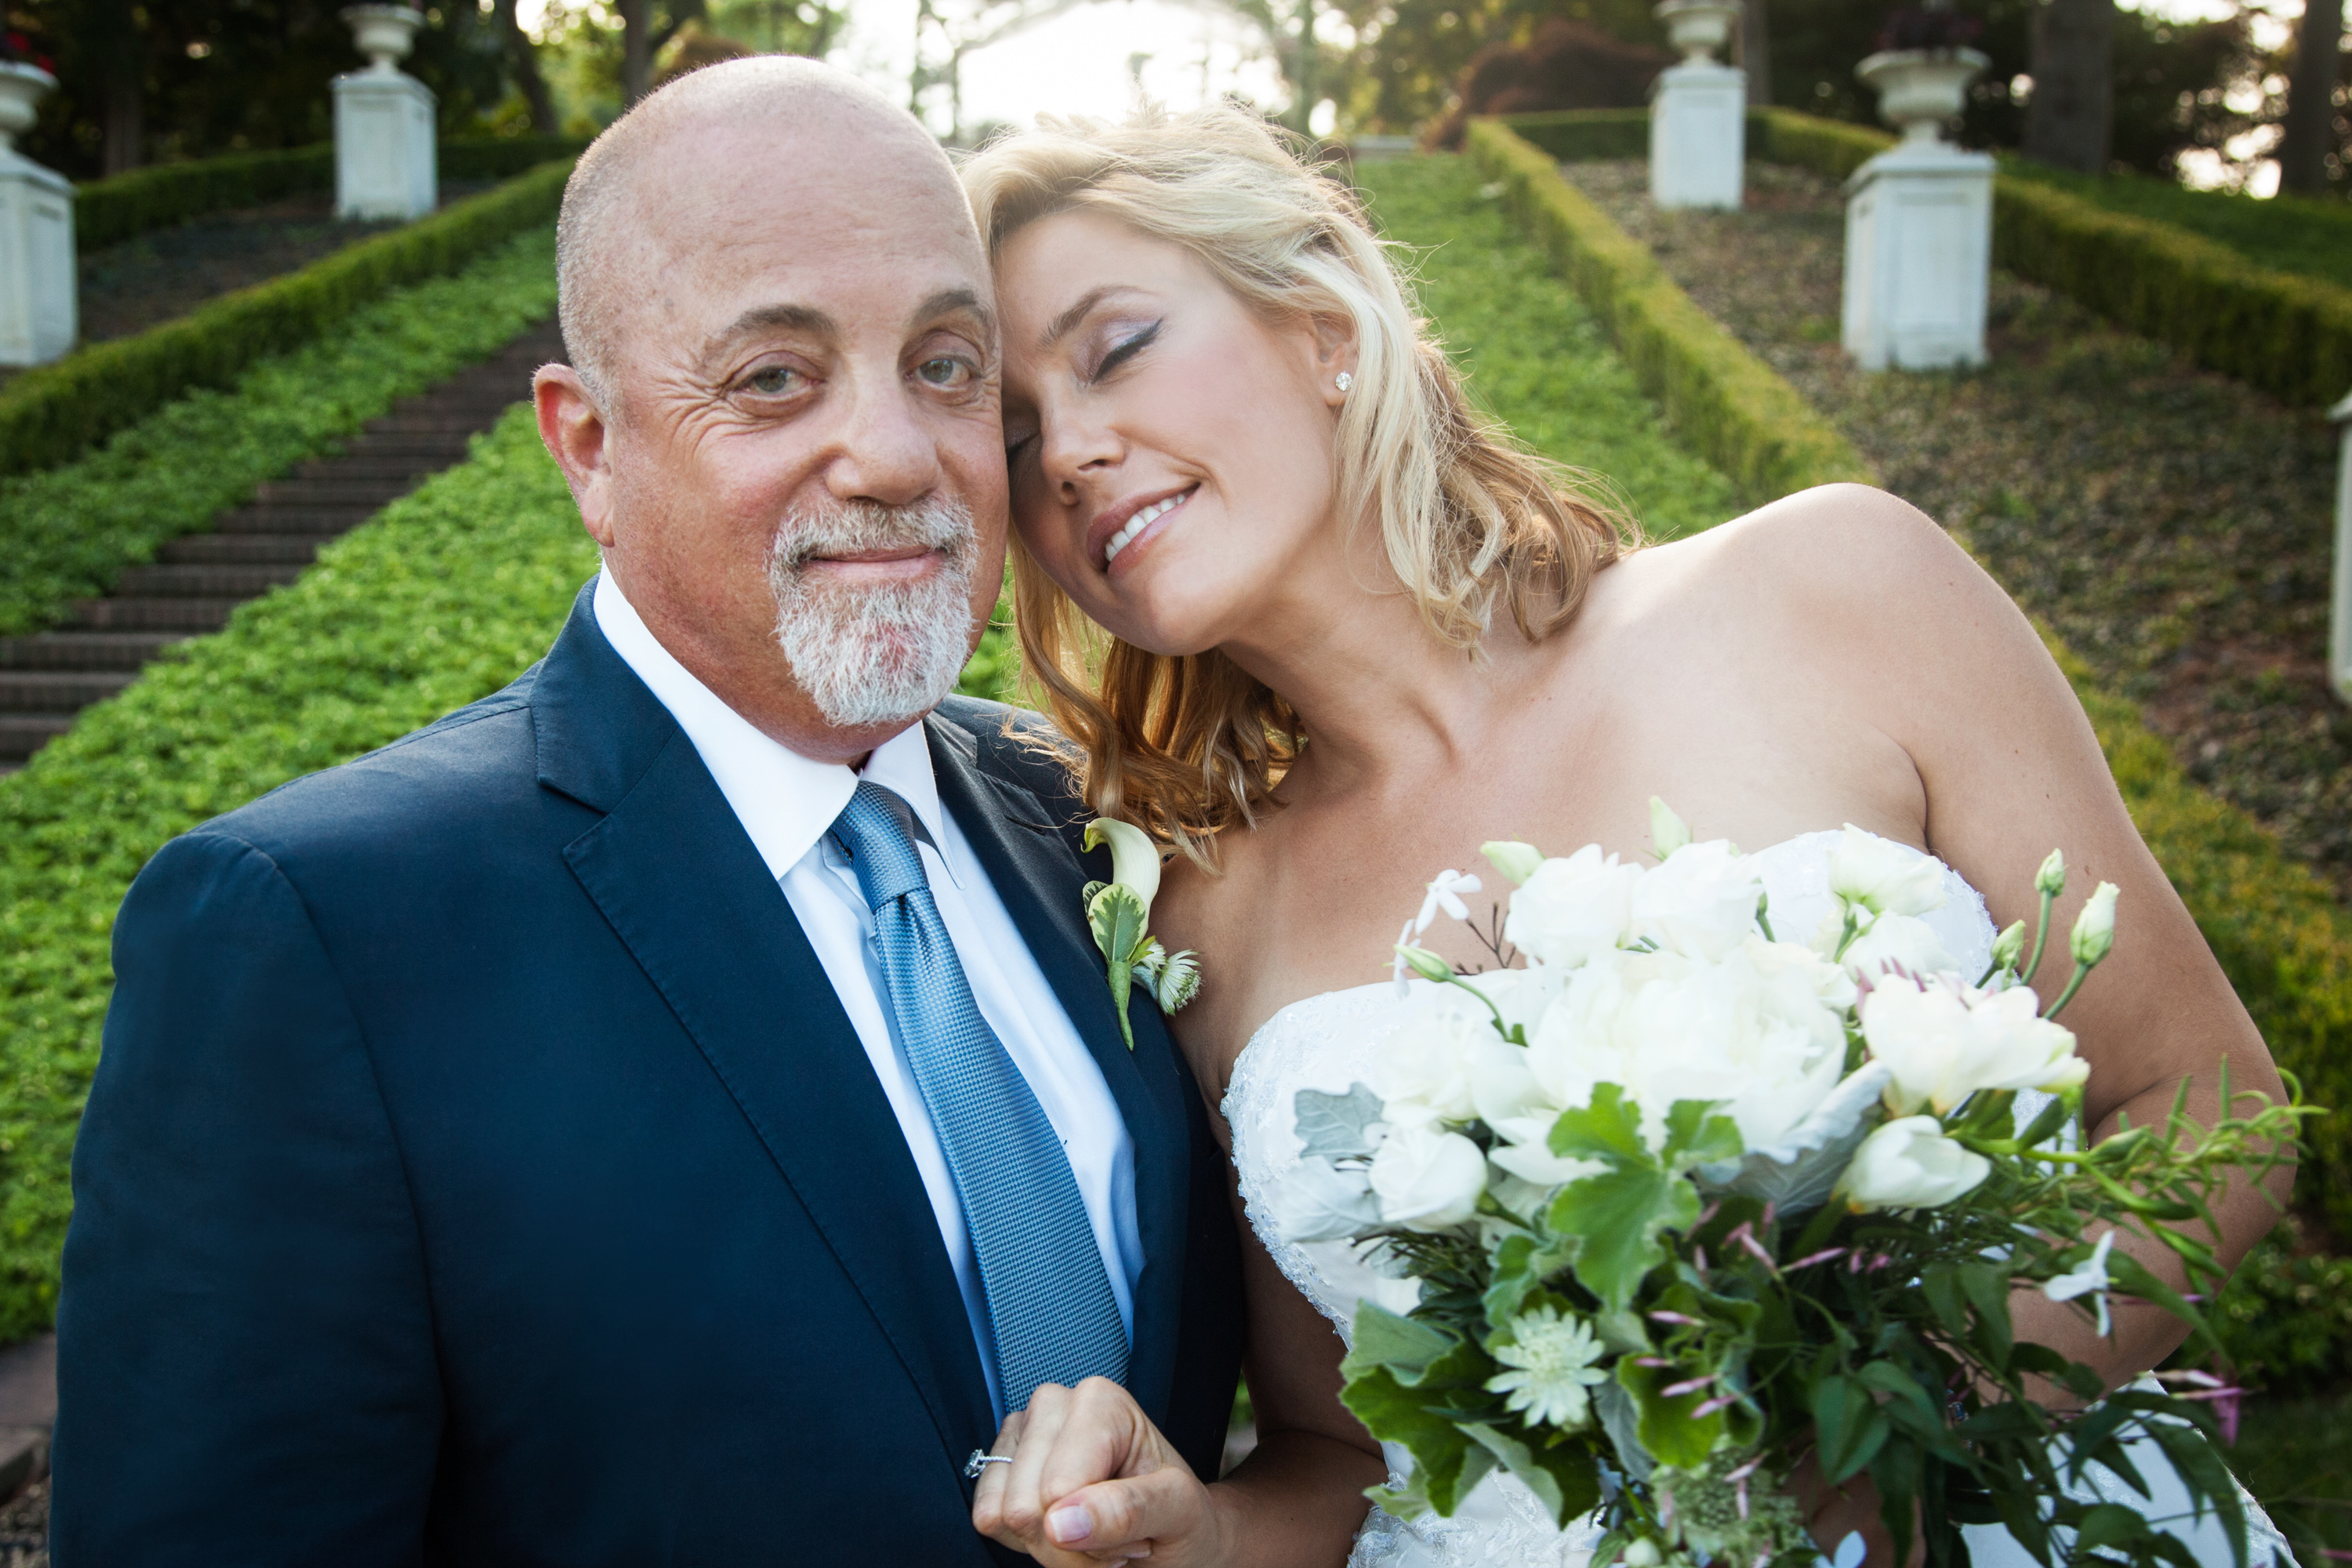 Billy Joel and Alexis Roderick tied the knot at a surprise wedding on July 4, 2015 at their estate in Long Island, N.Y.